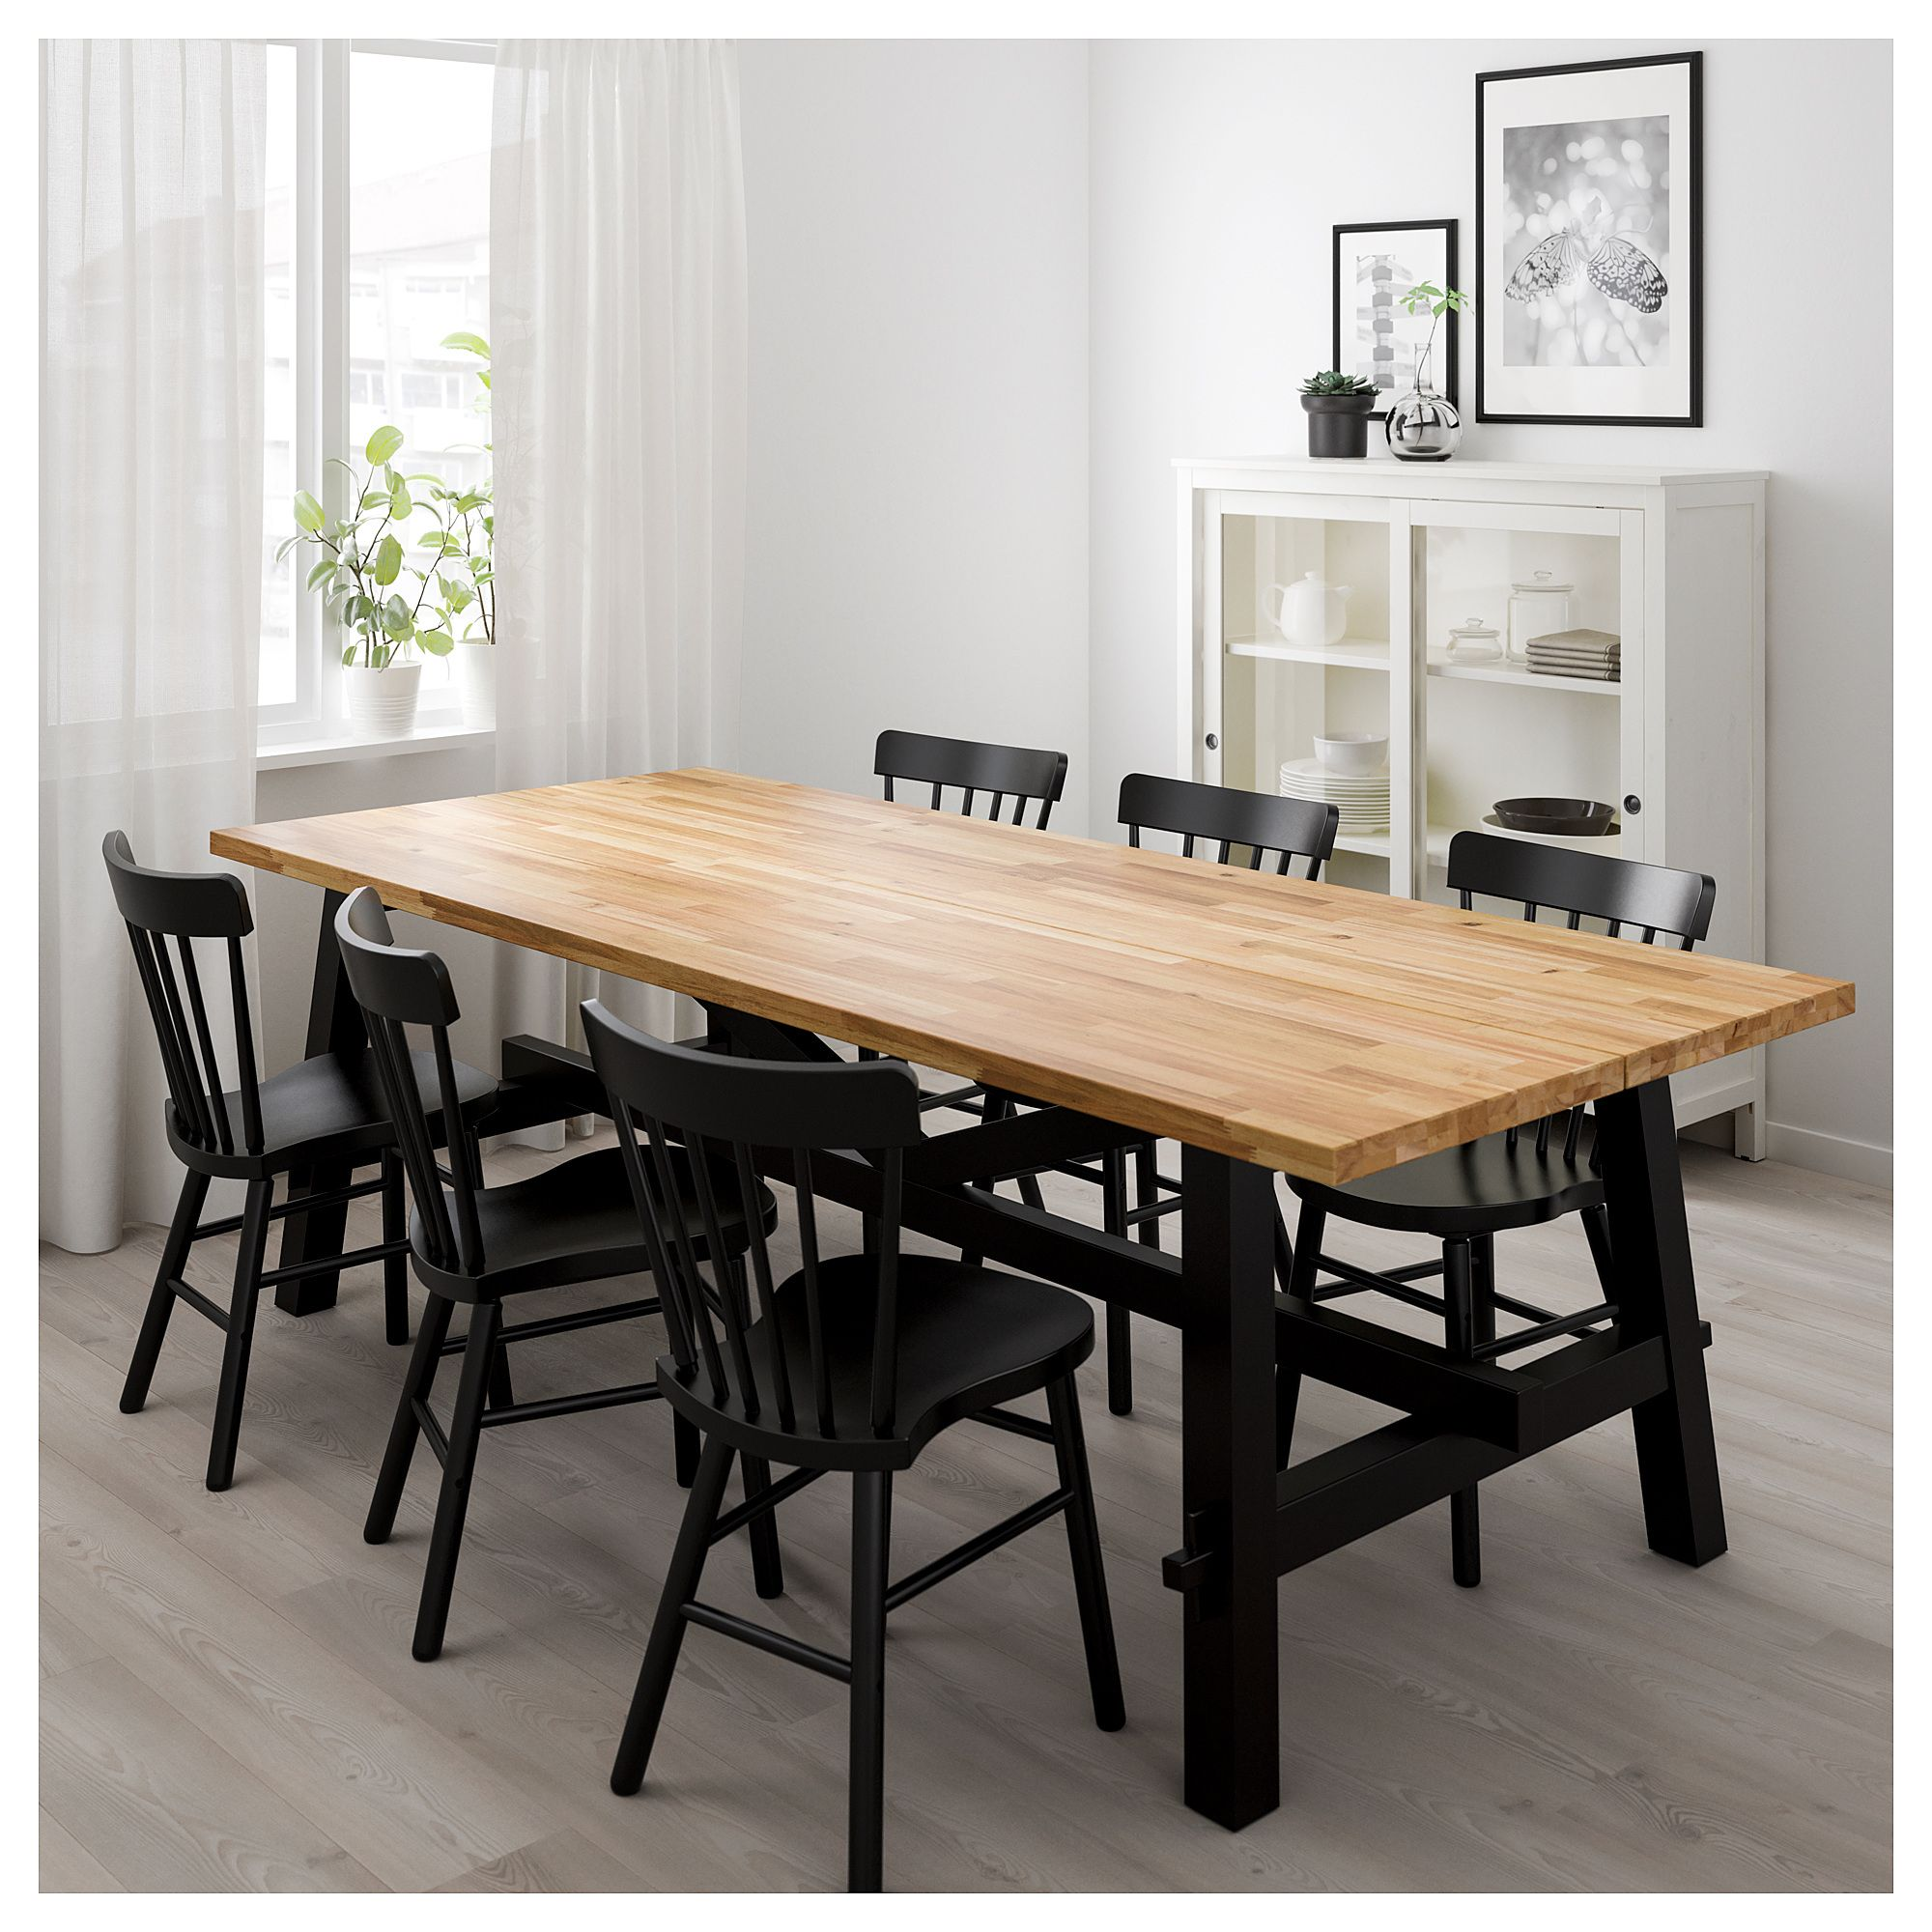 IKEA  SKOGSTA Dining table acacia  Products in 2019  Ikea dining table Ikea dining room